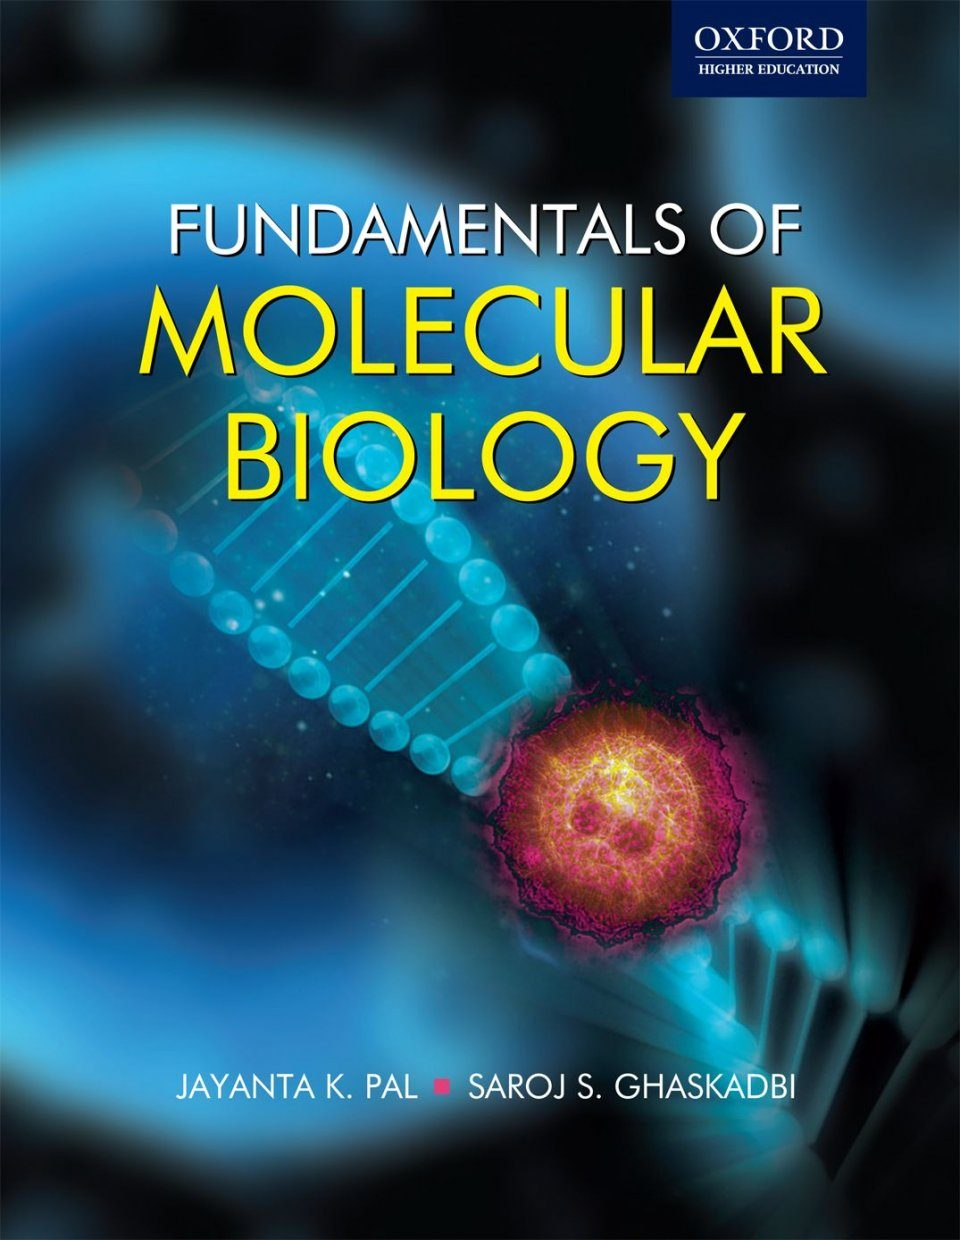 fundamentals of biology Biology, also referred to as the biological sciences, is the study of living organisms utilizing the scientific method biology examines the structure, function.